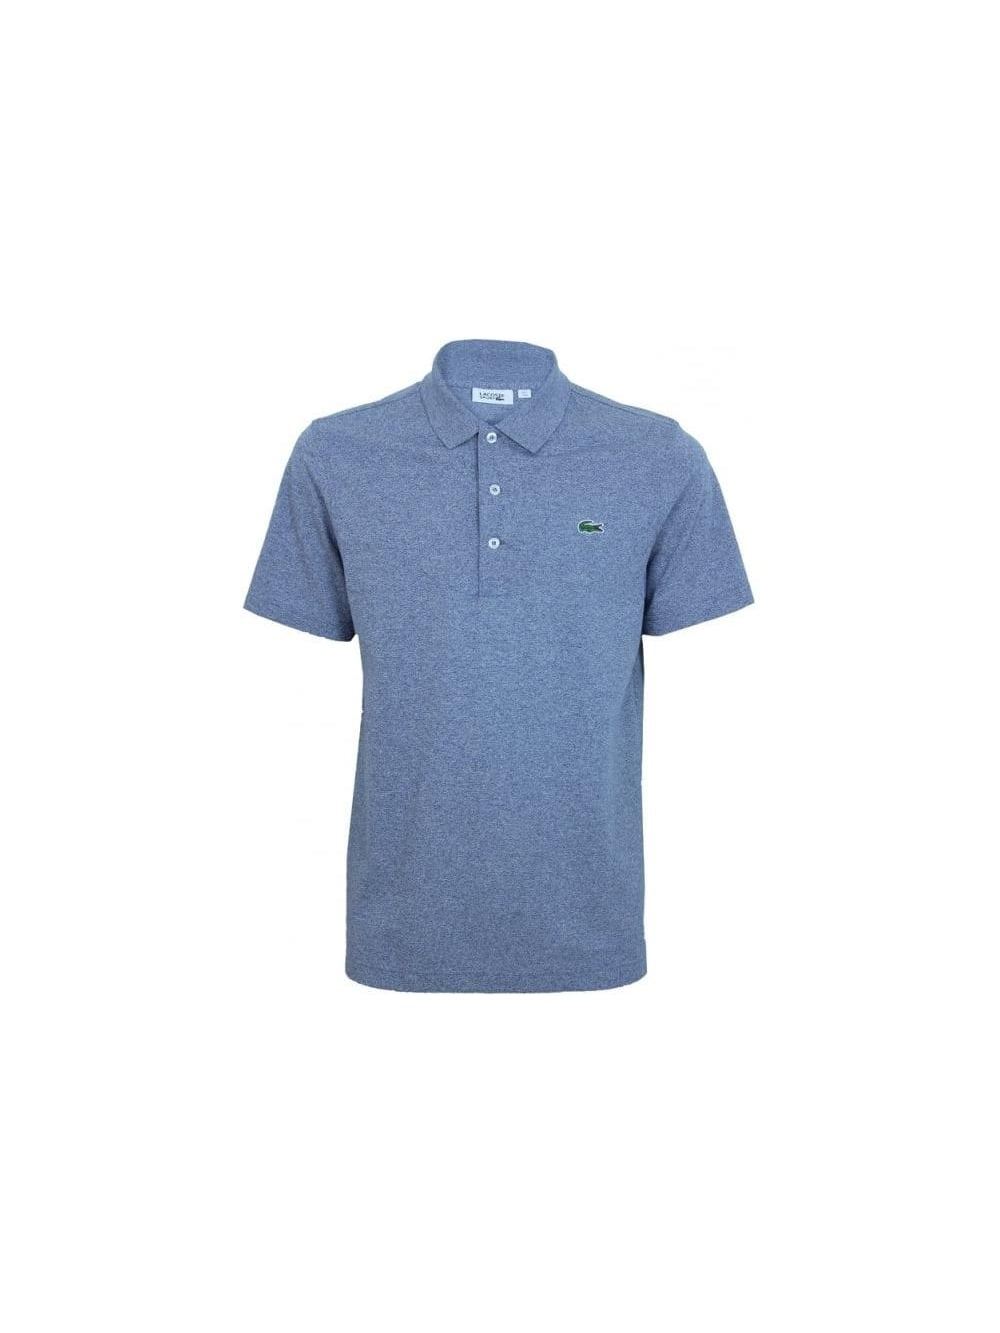 c61ccc3fc Light Blue Polo Shirt Lacoste